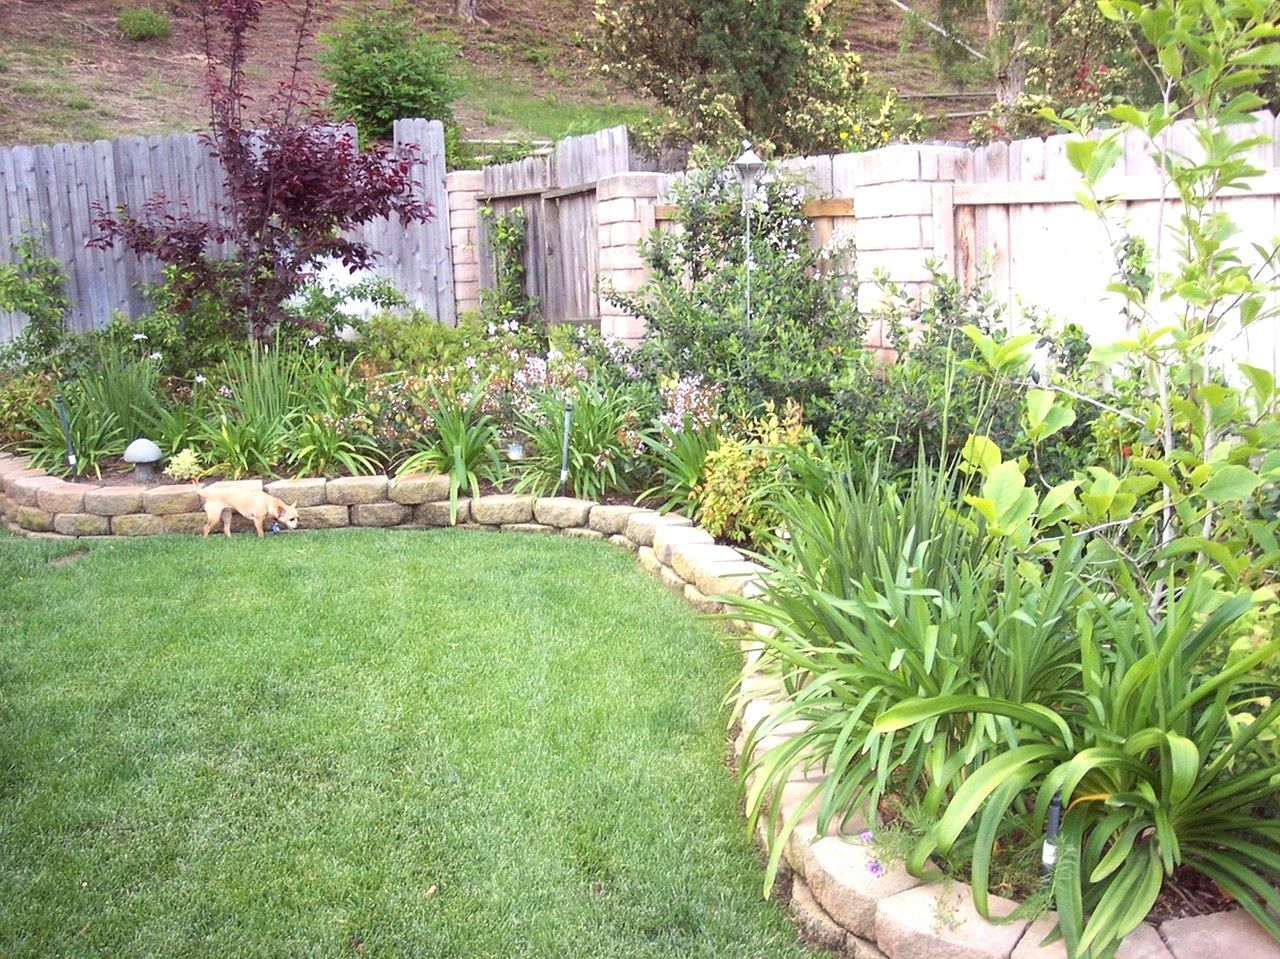 Garden inspiration nz small garden landscaping ideas nz for Inspirational small garden ideas